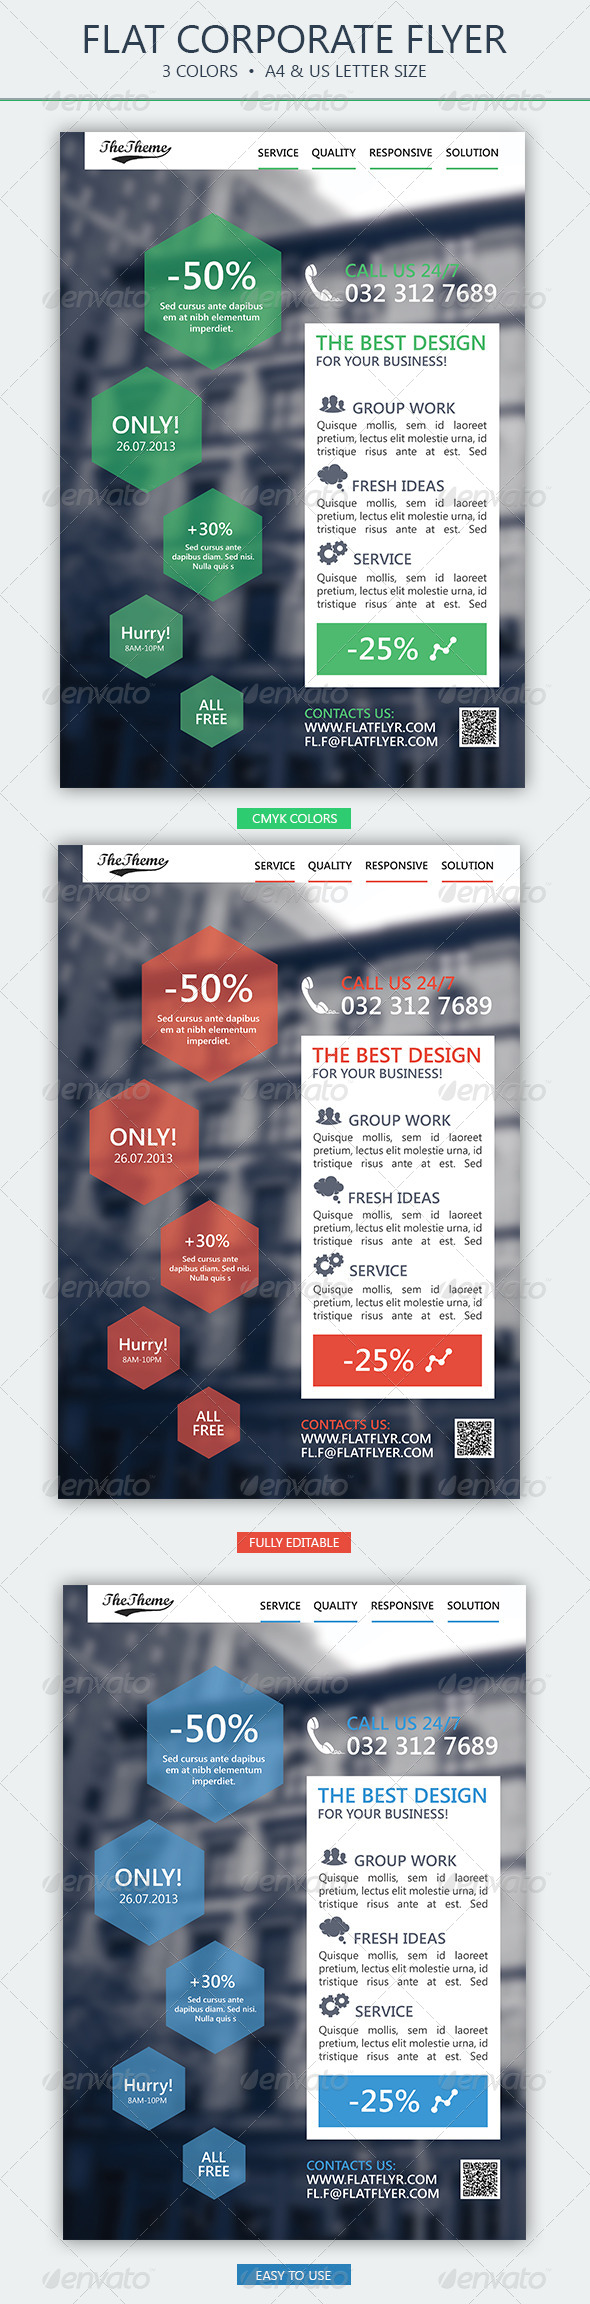 GraphicRiver Flat Corporate Flyer 3 4925931